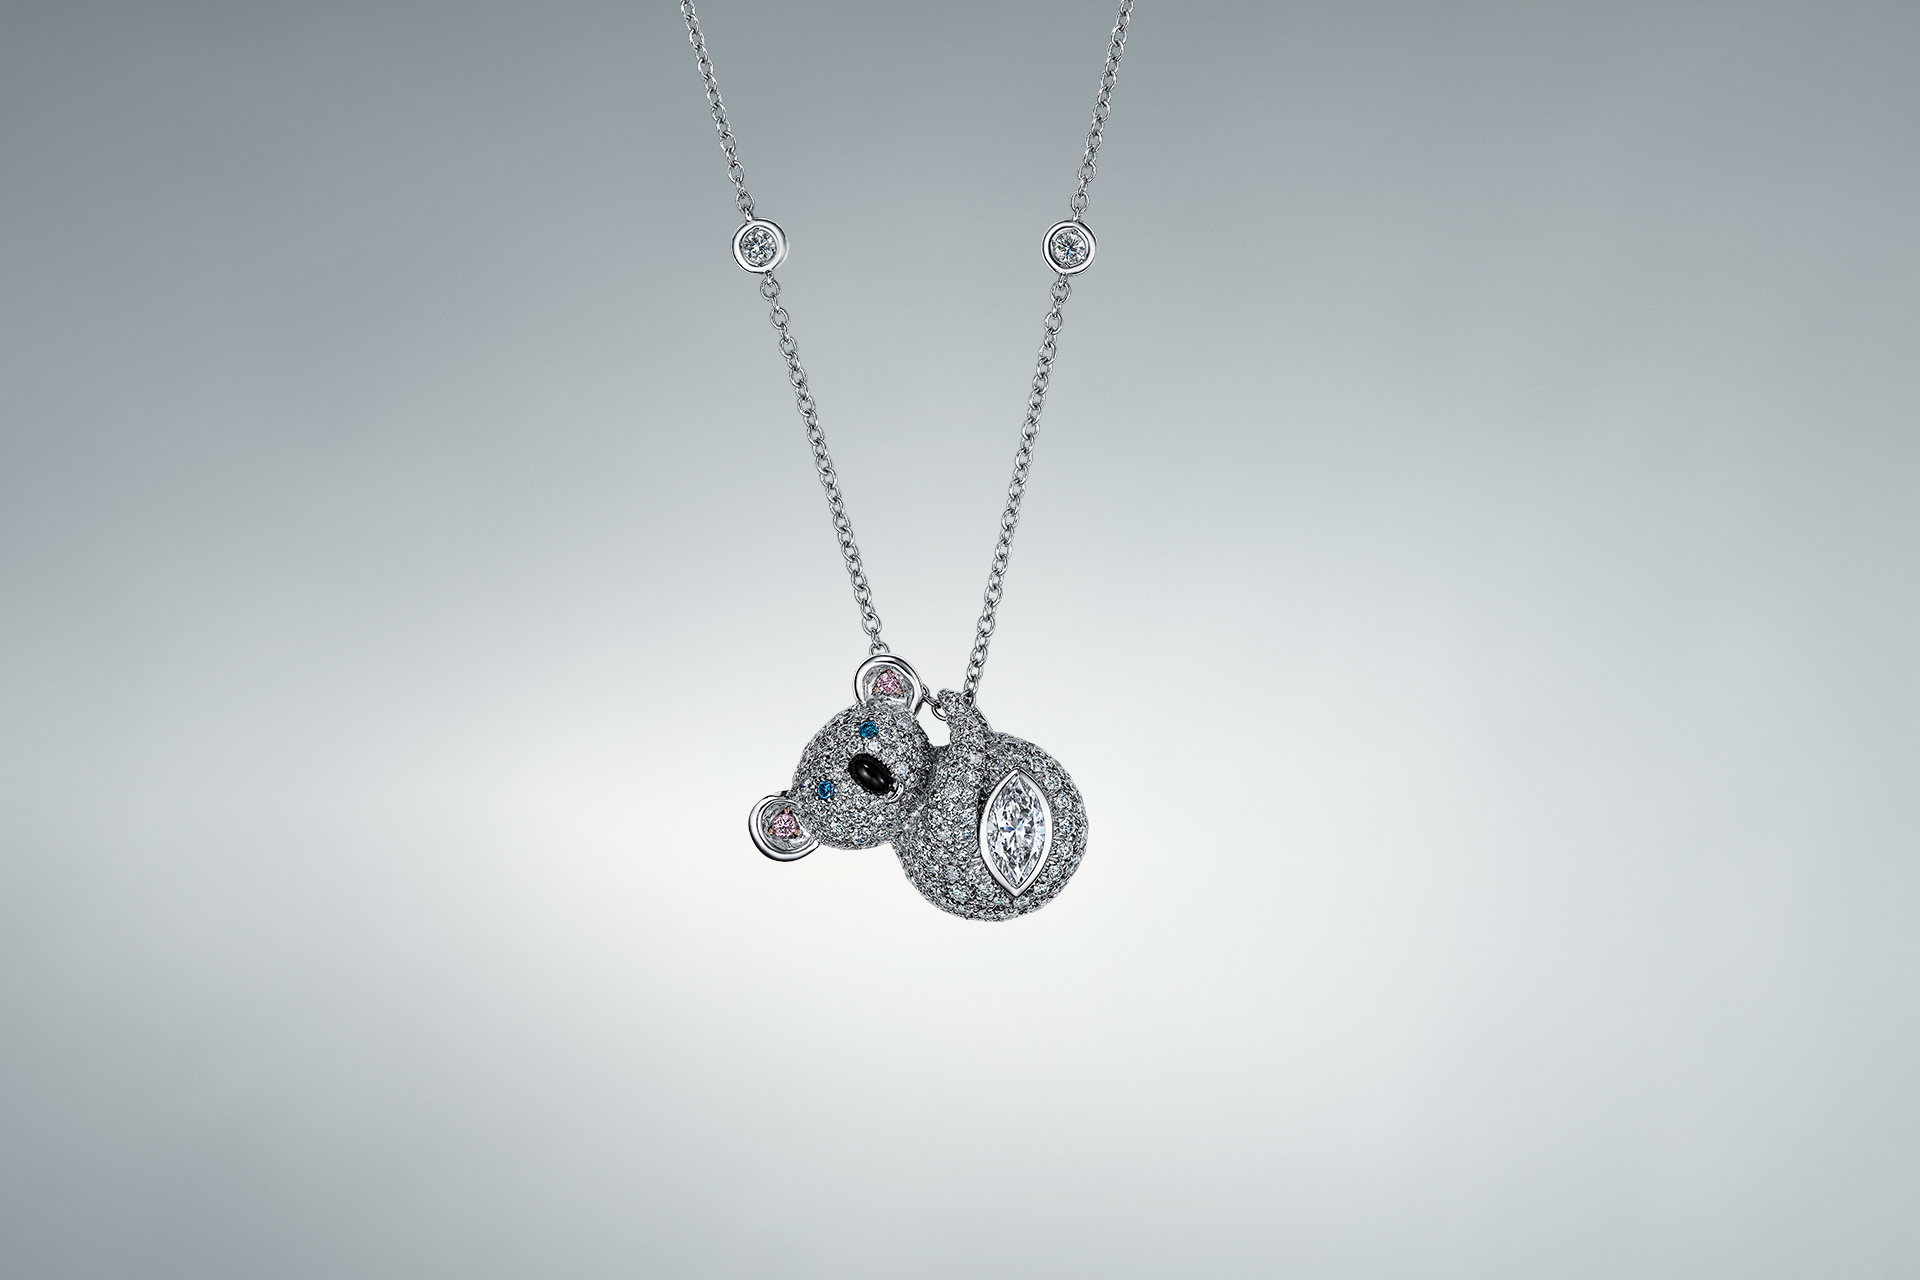 Koala necklace - Maria Kovadi